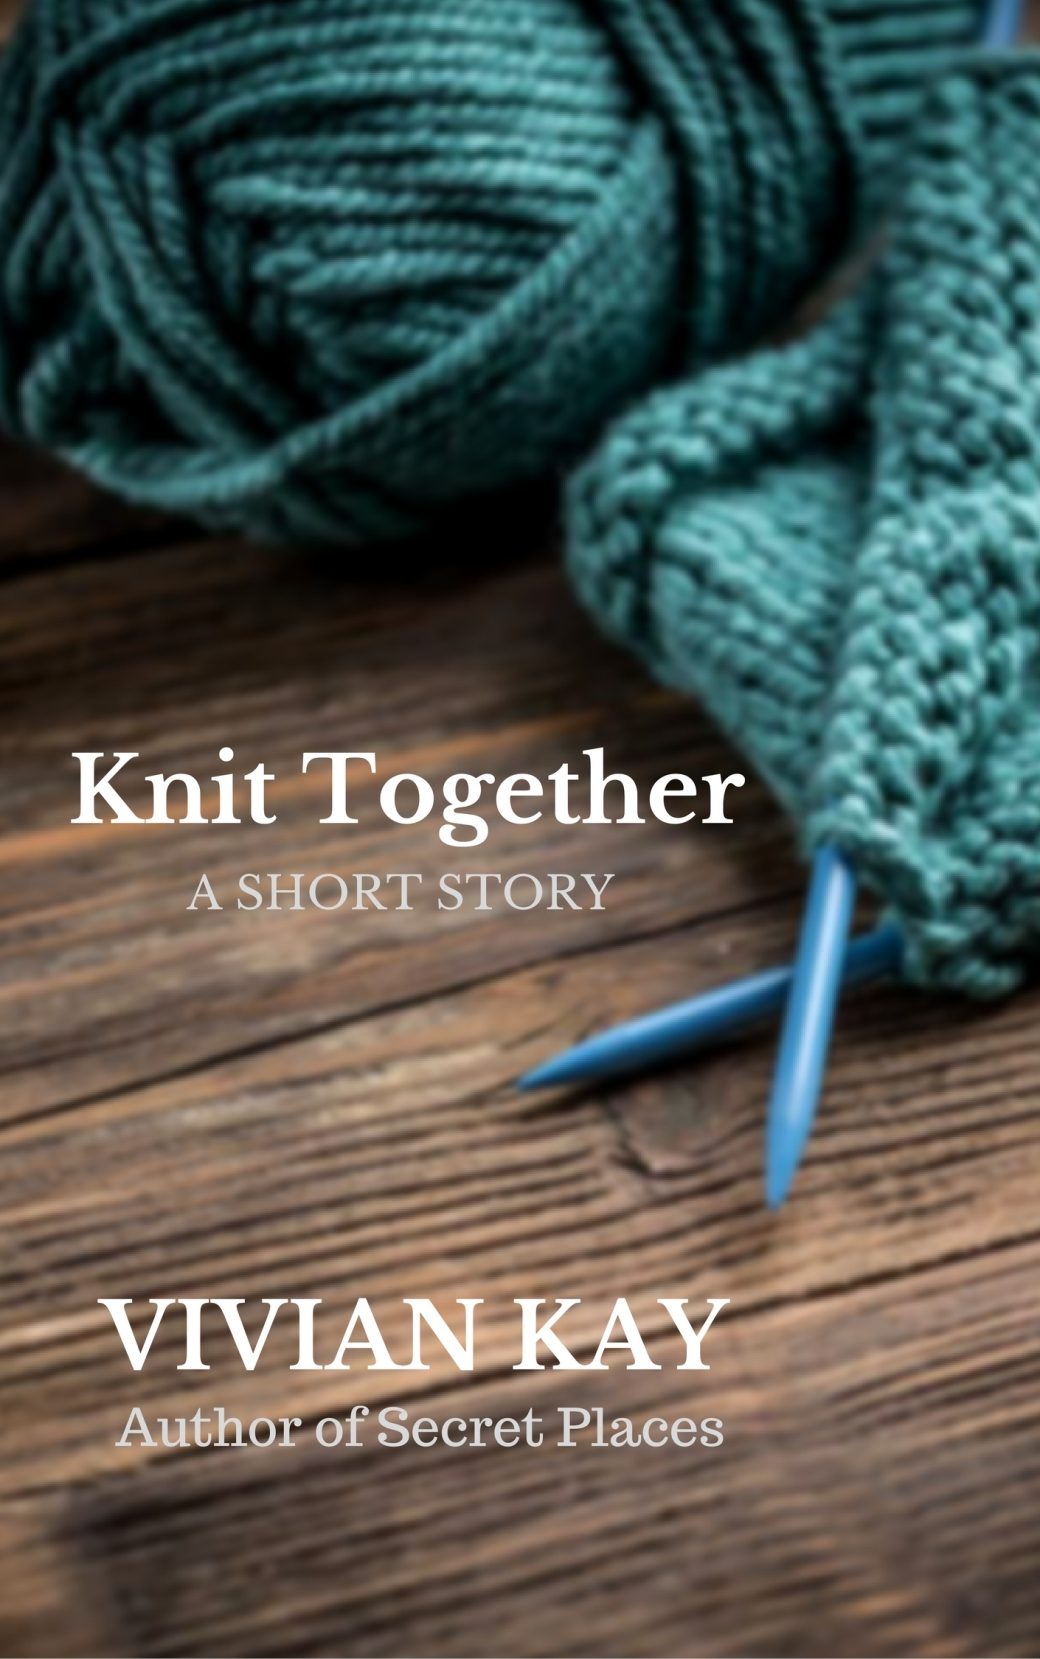 knit-together-kindle-cover-two